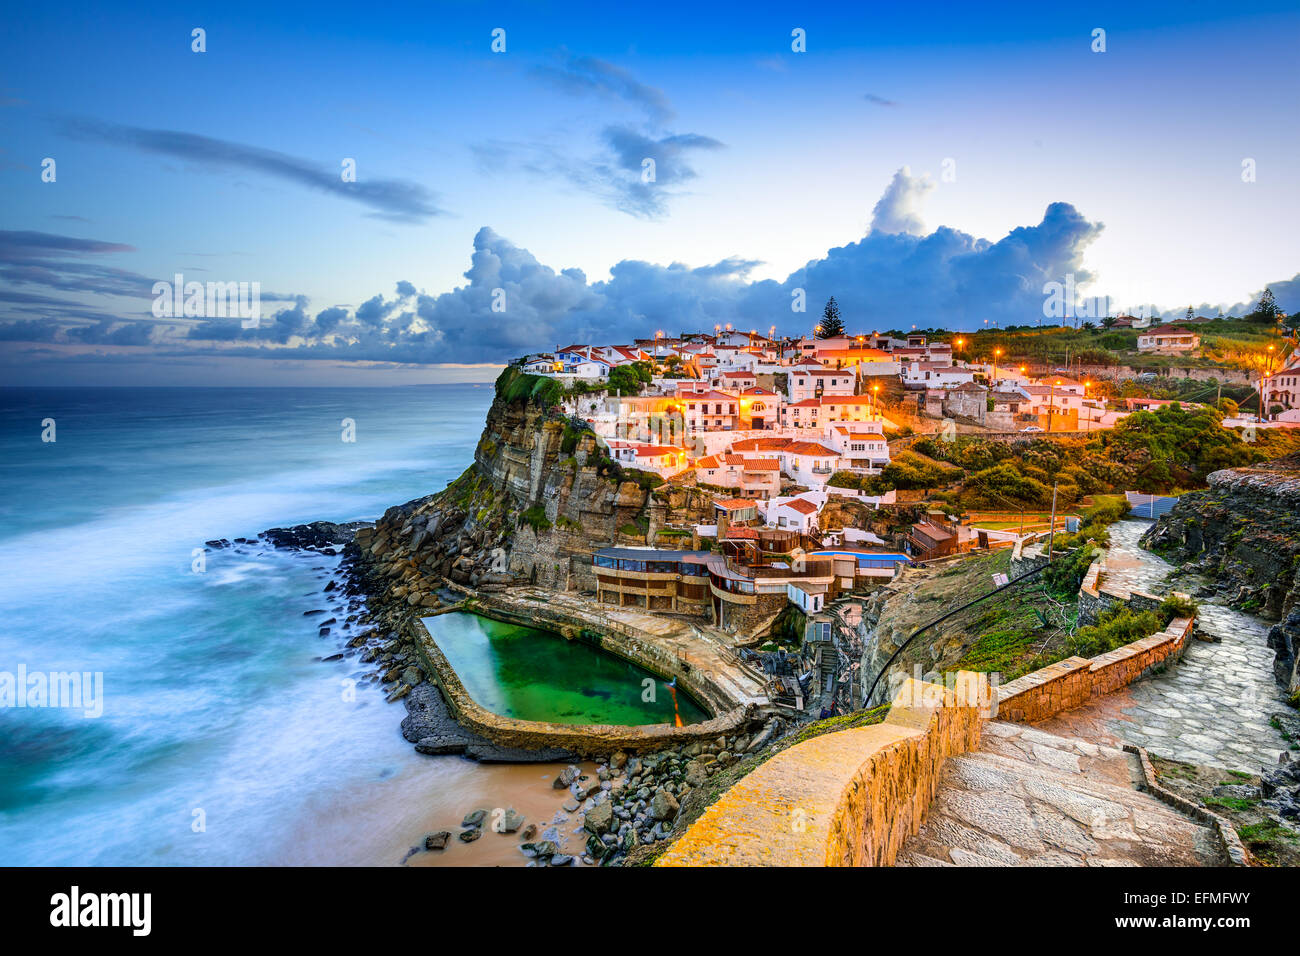 Azenhas do Mar, Portugal coastal town. - Stock Image